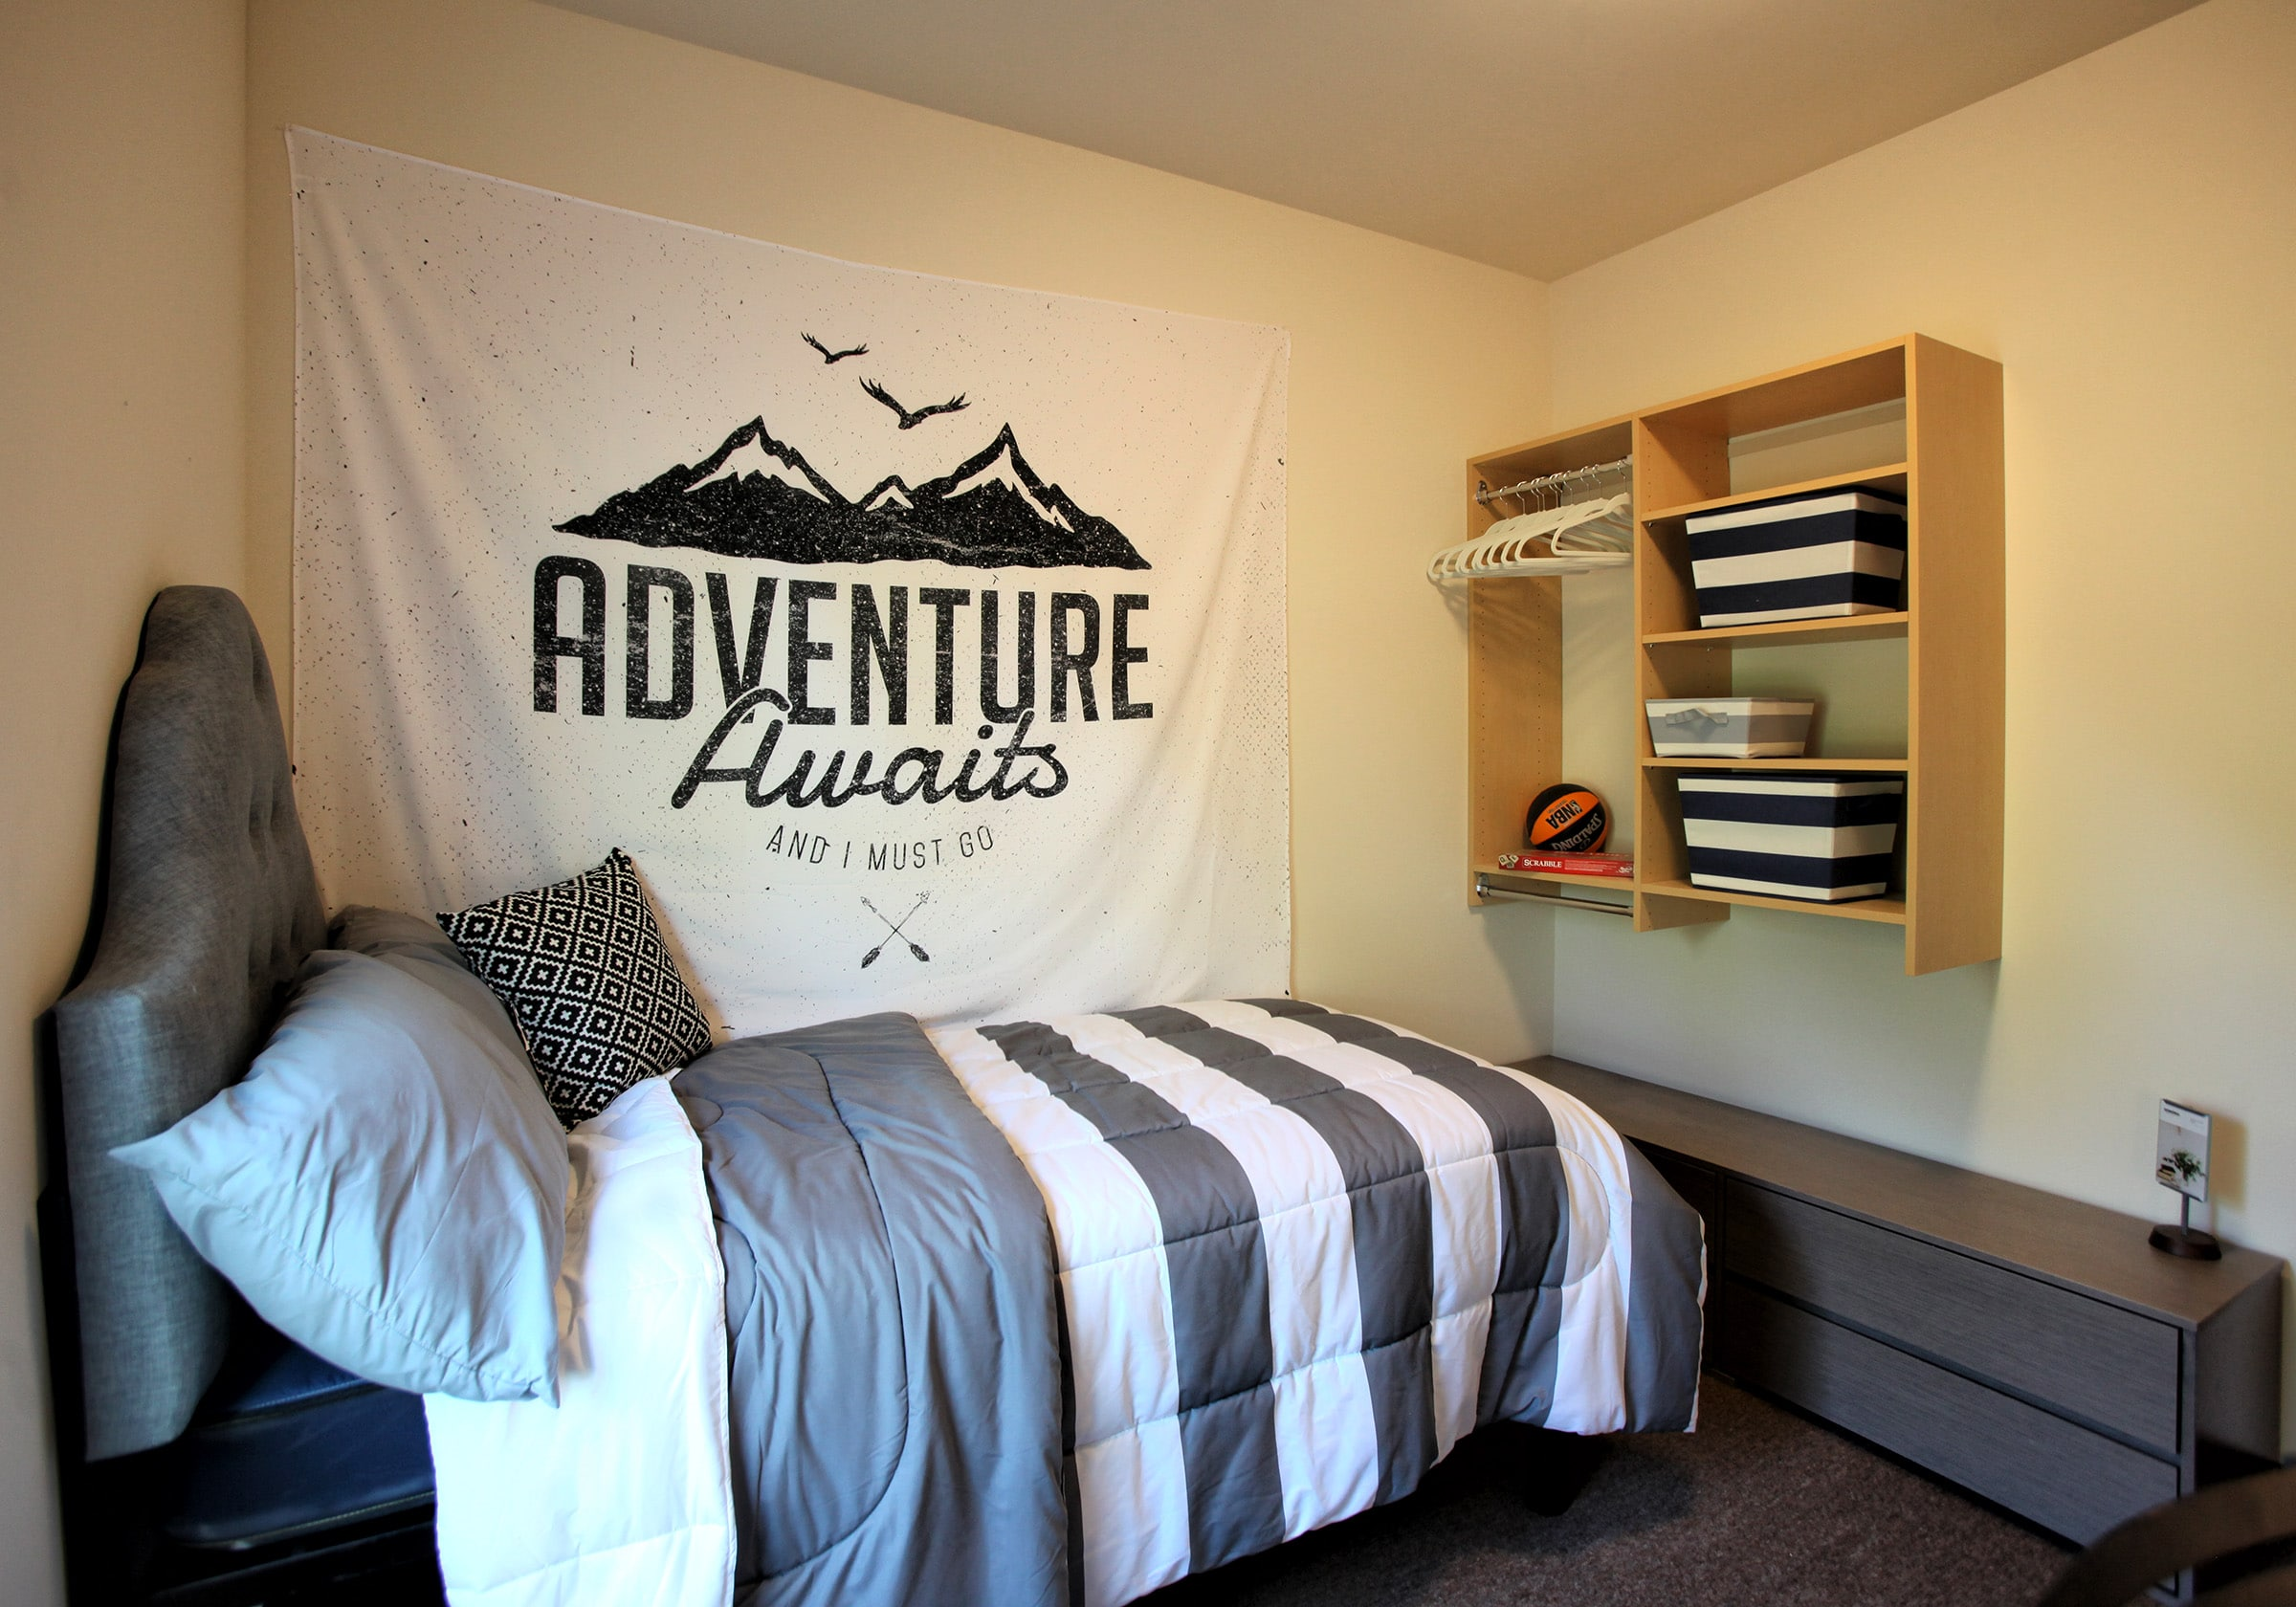 Vue bedroom with bed and shelf on wall